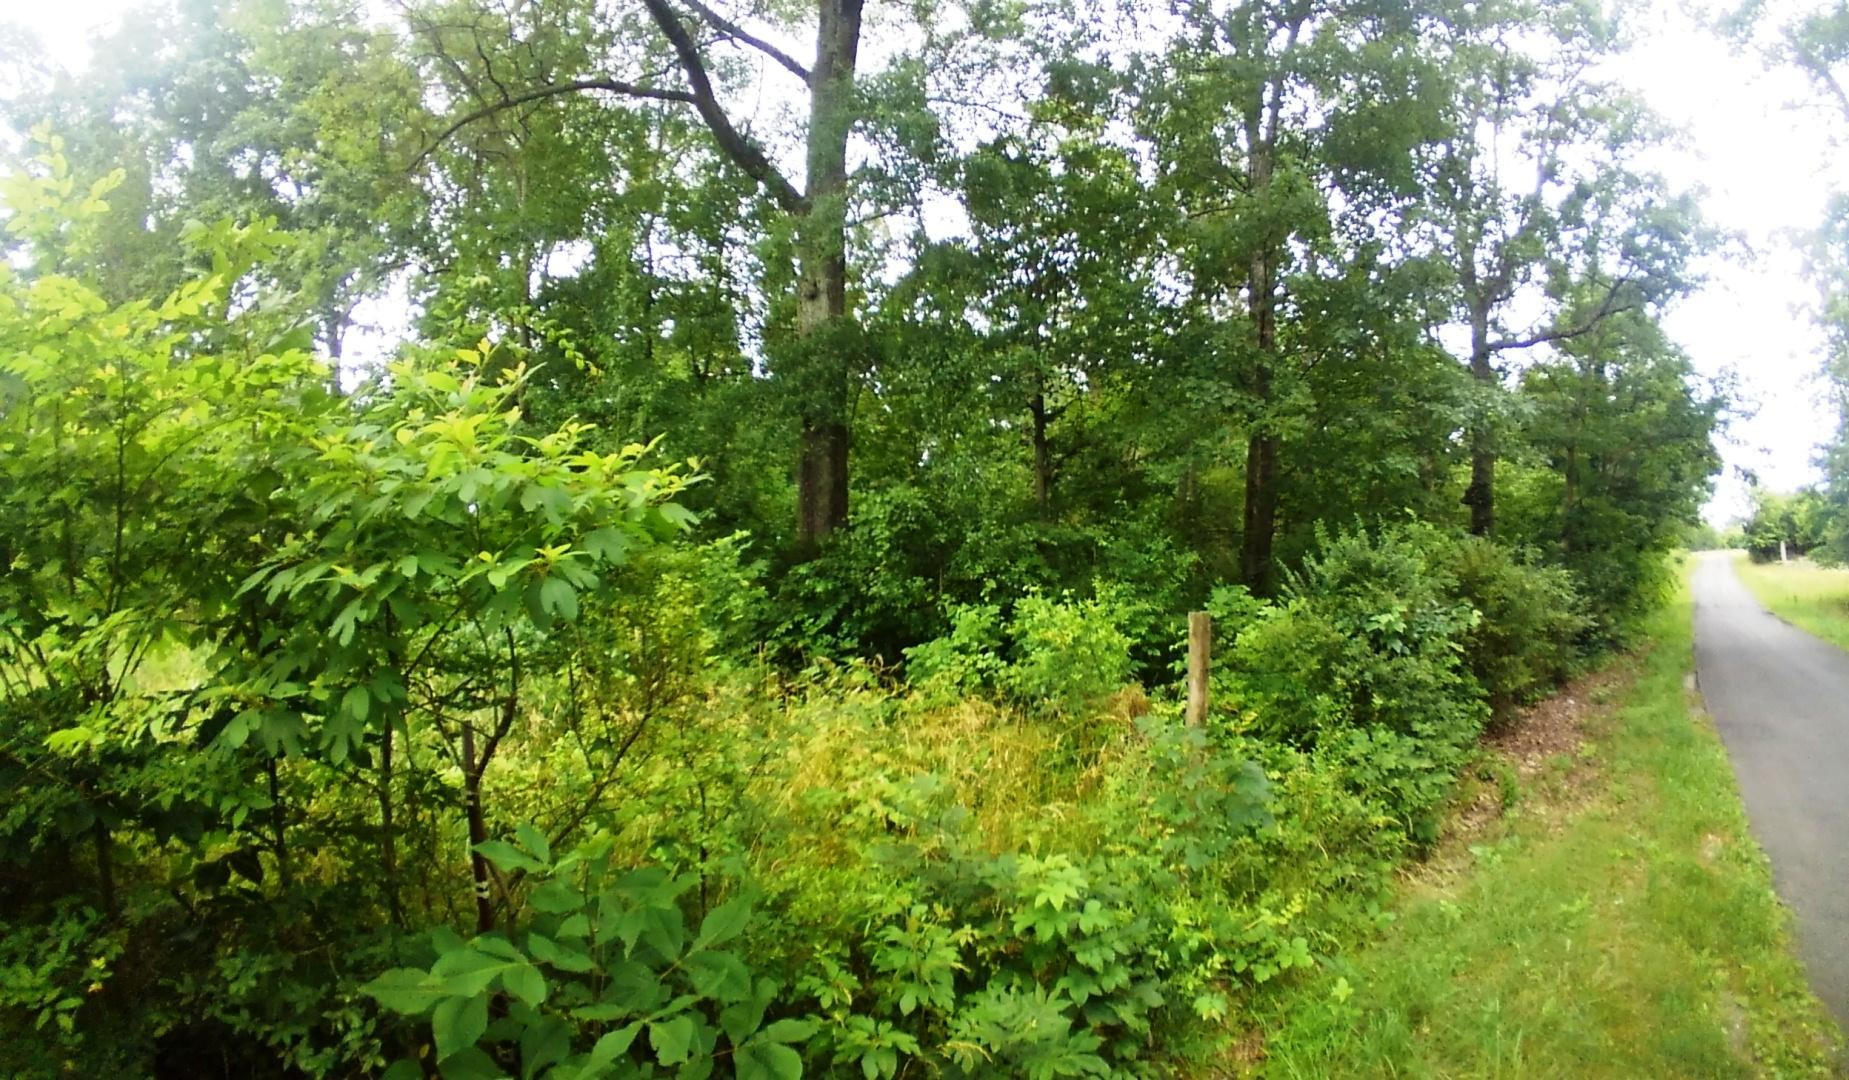 Photo of Lot 5 Smelcer Road, Mohawk, TN 37810 (MLS # 267439)